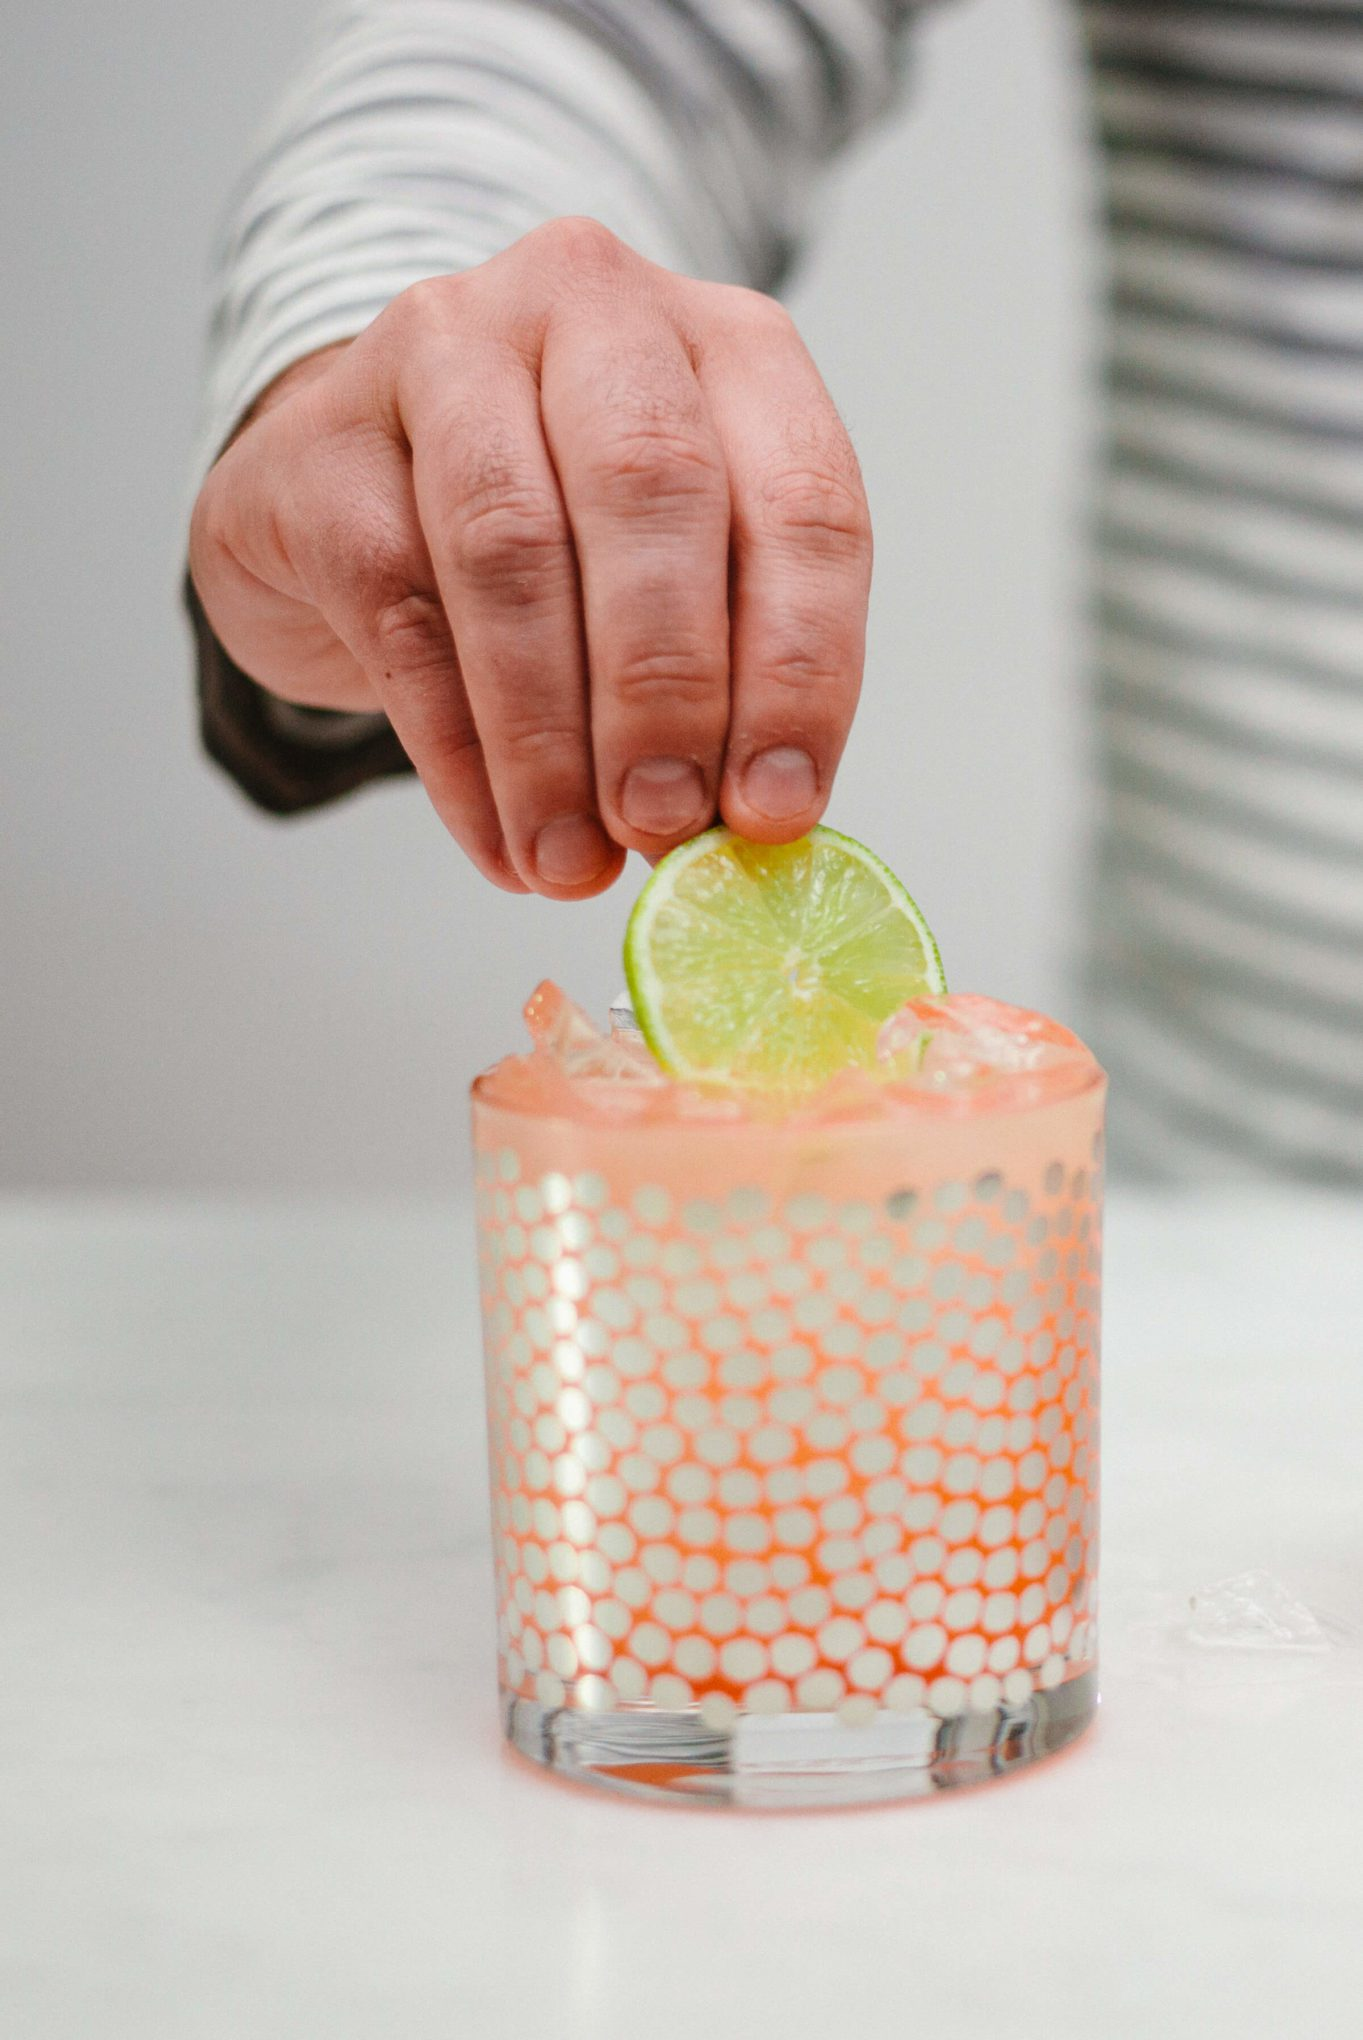 The Taste SF makes Paloma cocktails garnished with limes